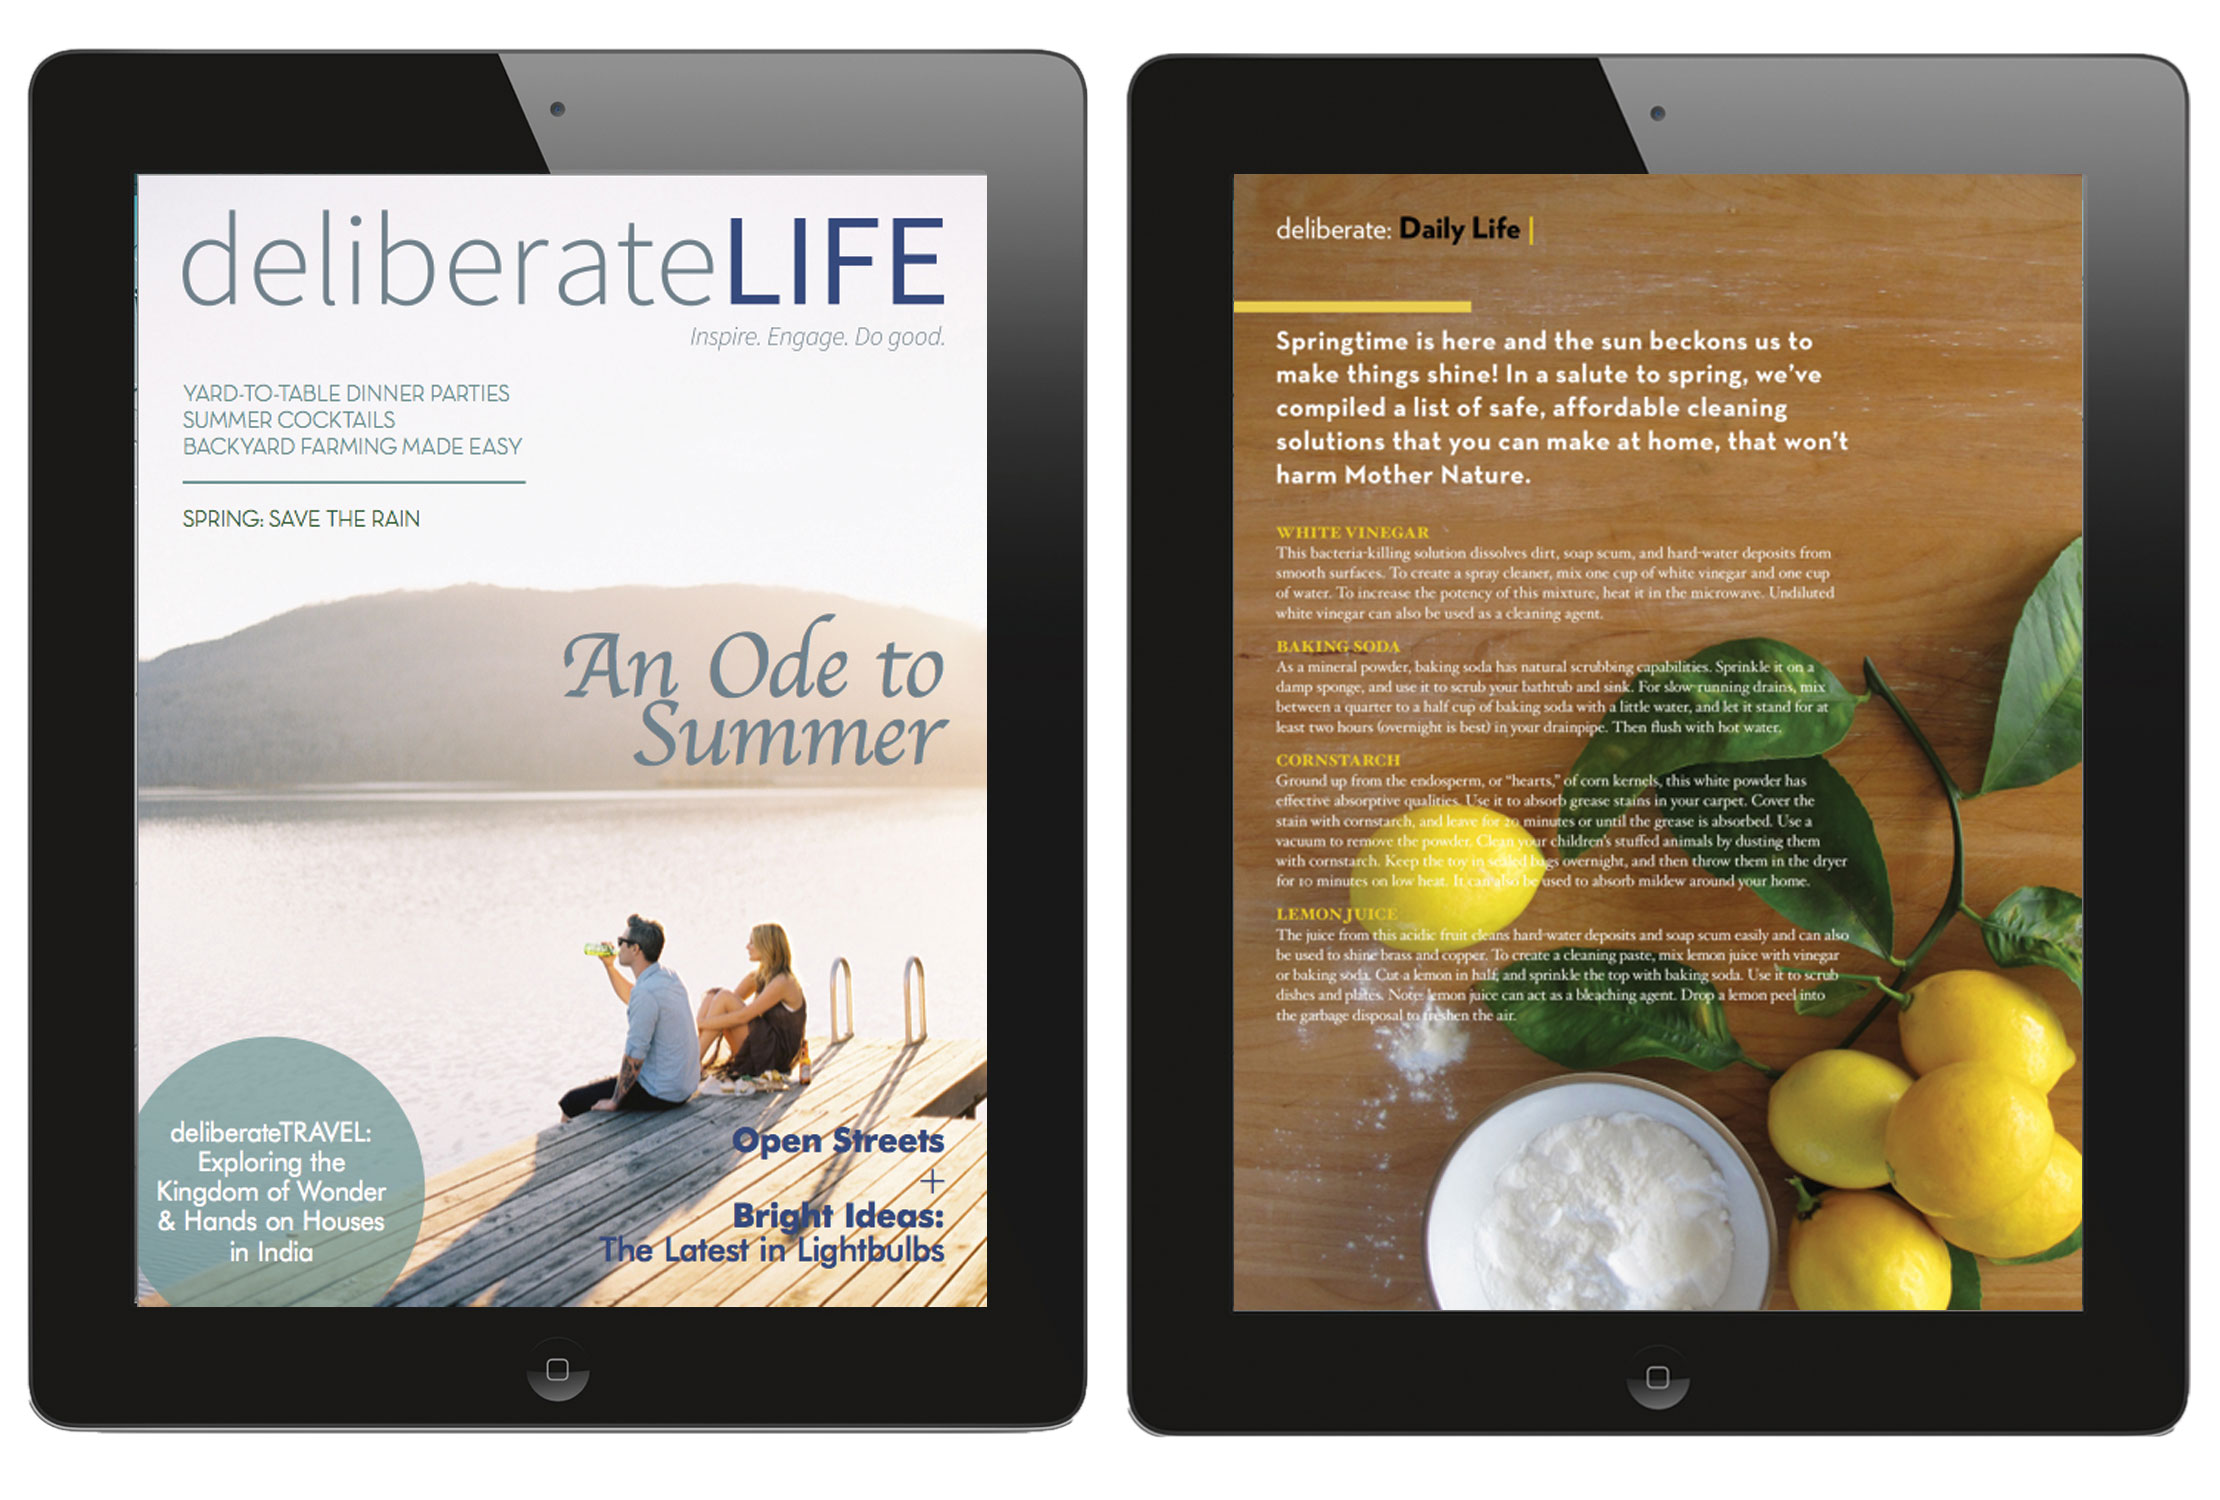 deliberateLIFE – A magazine for the homesteader in all of us.